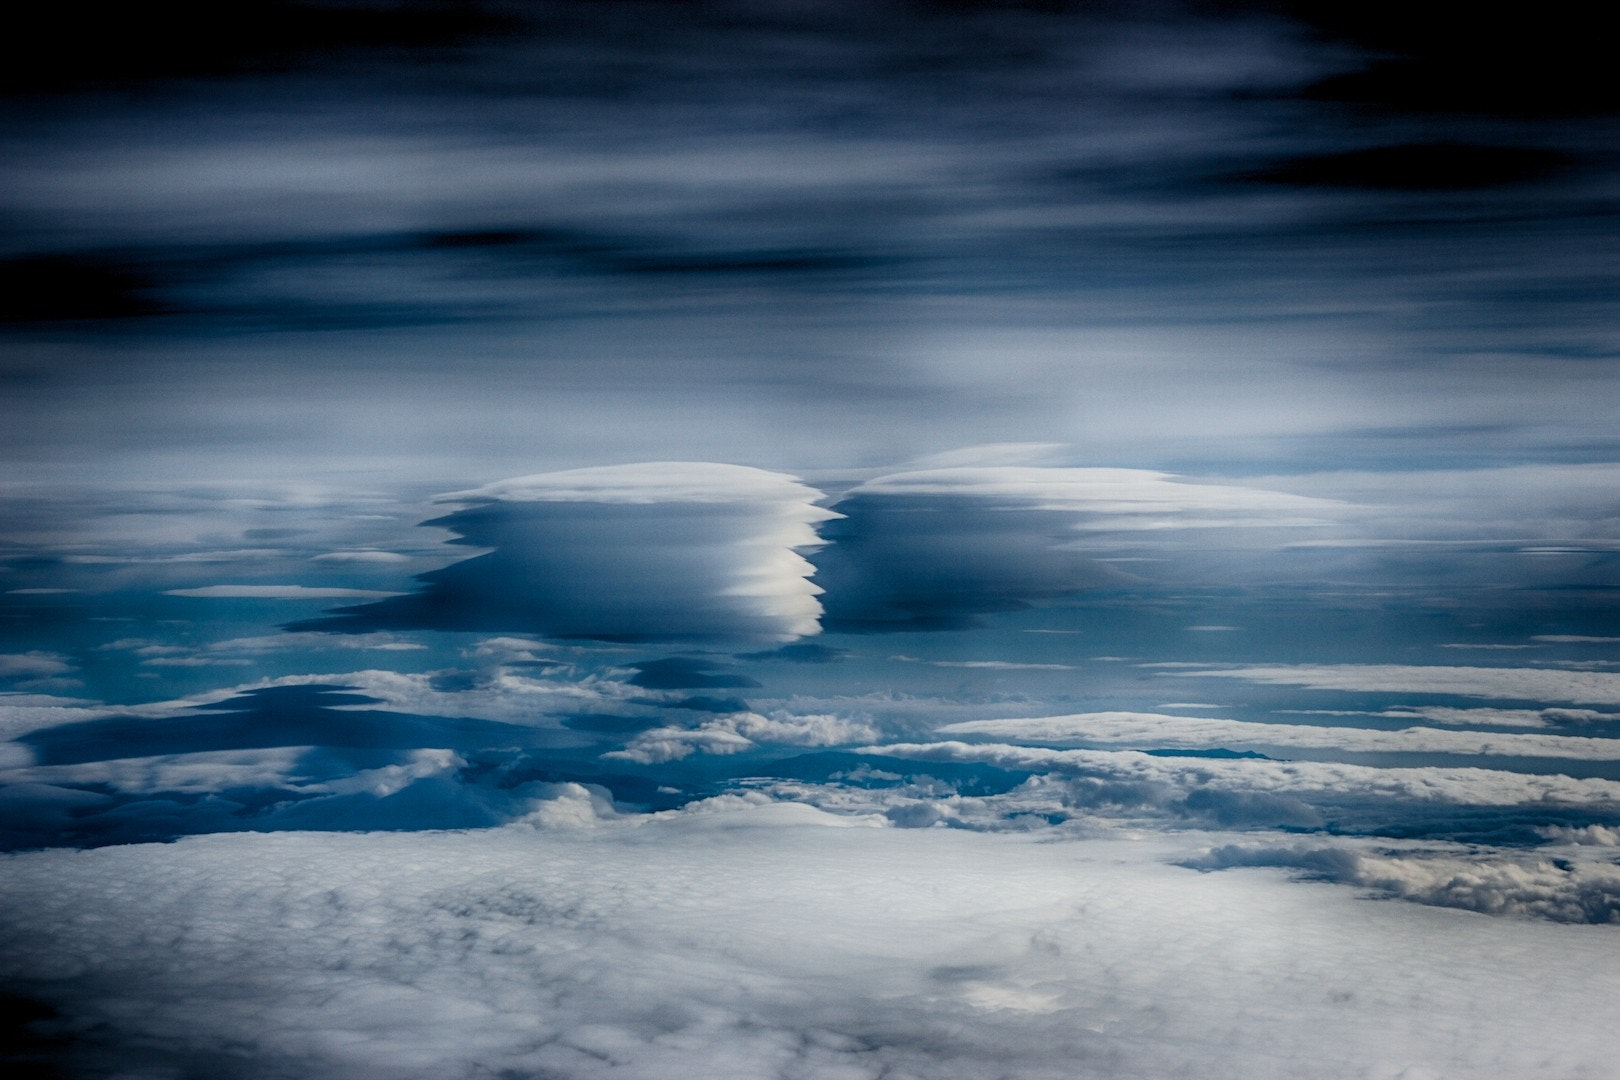 Photograph Lenticularama by Pete Robinson on 500px